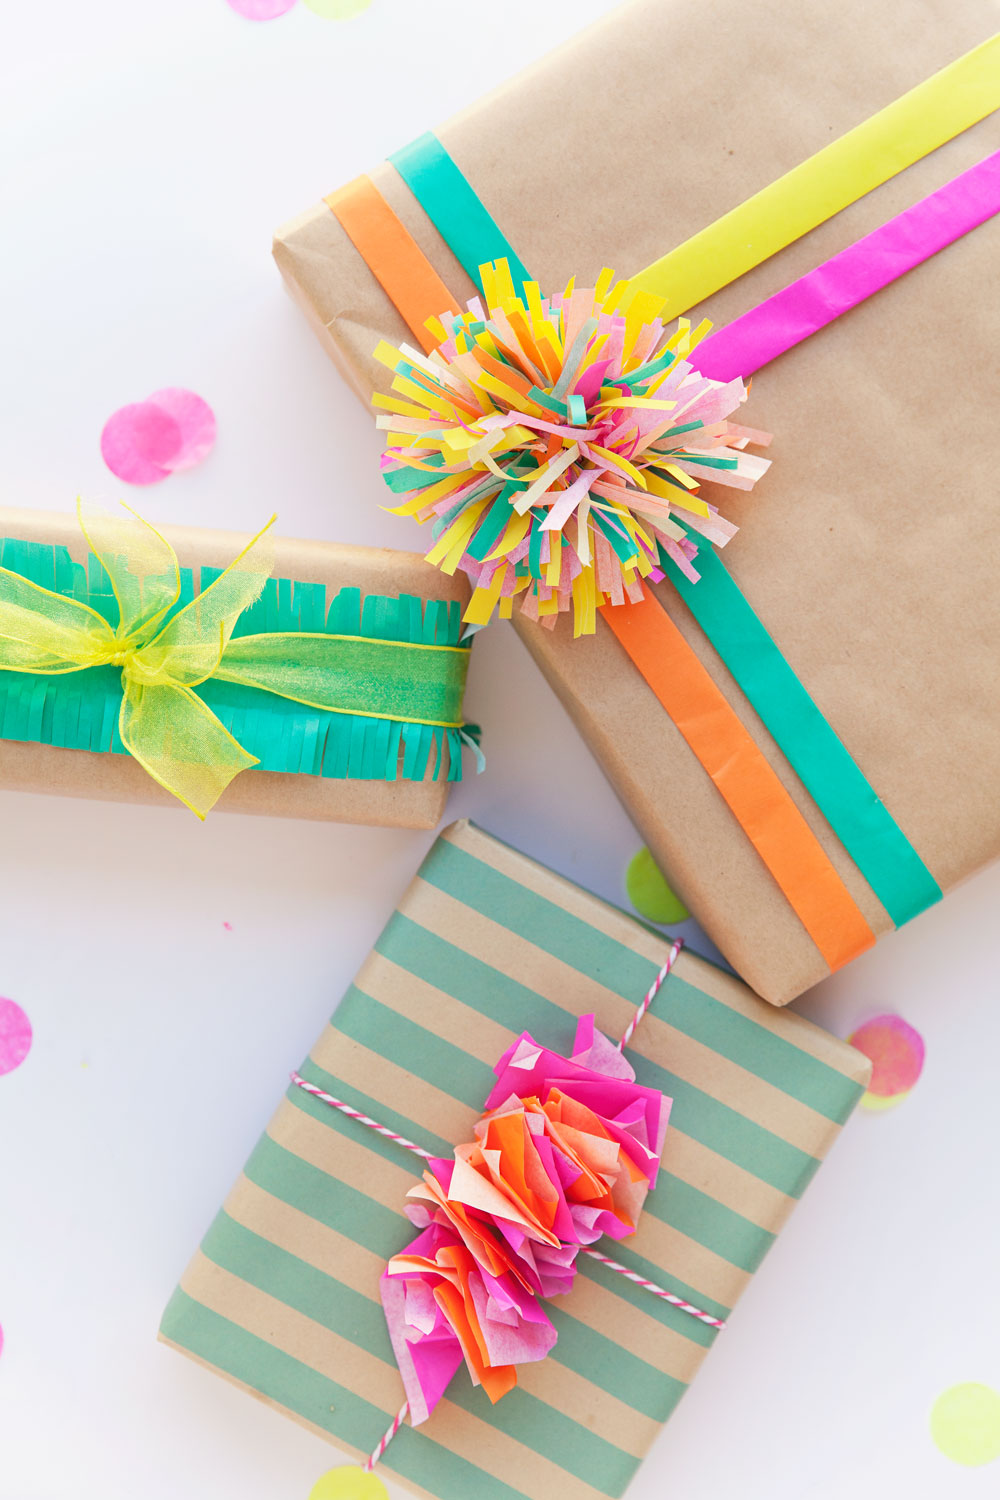 10 ideas originales para envolver regalos blog for Decorar regalos